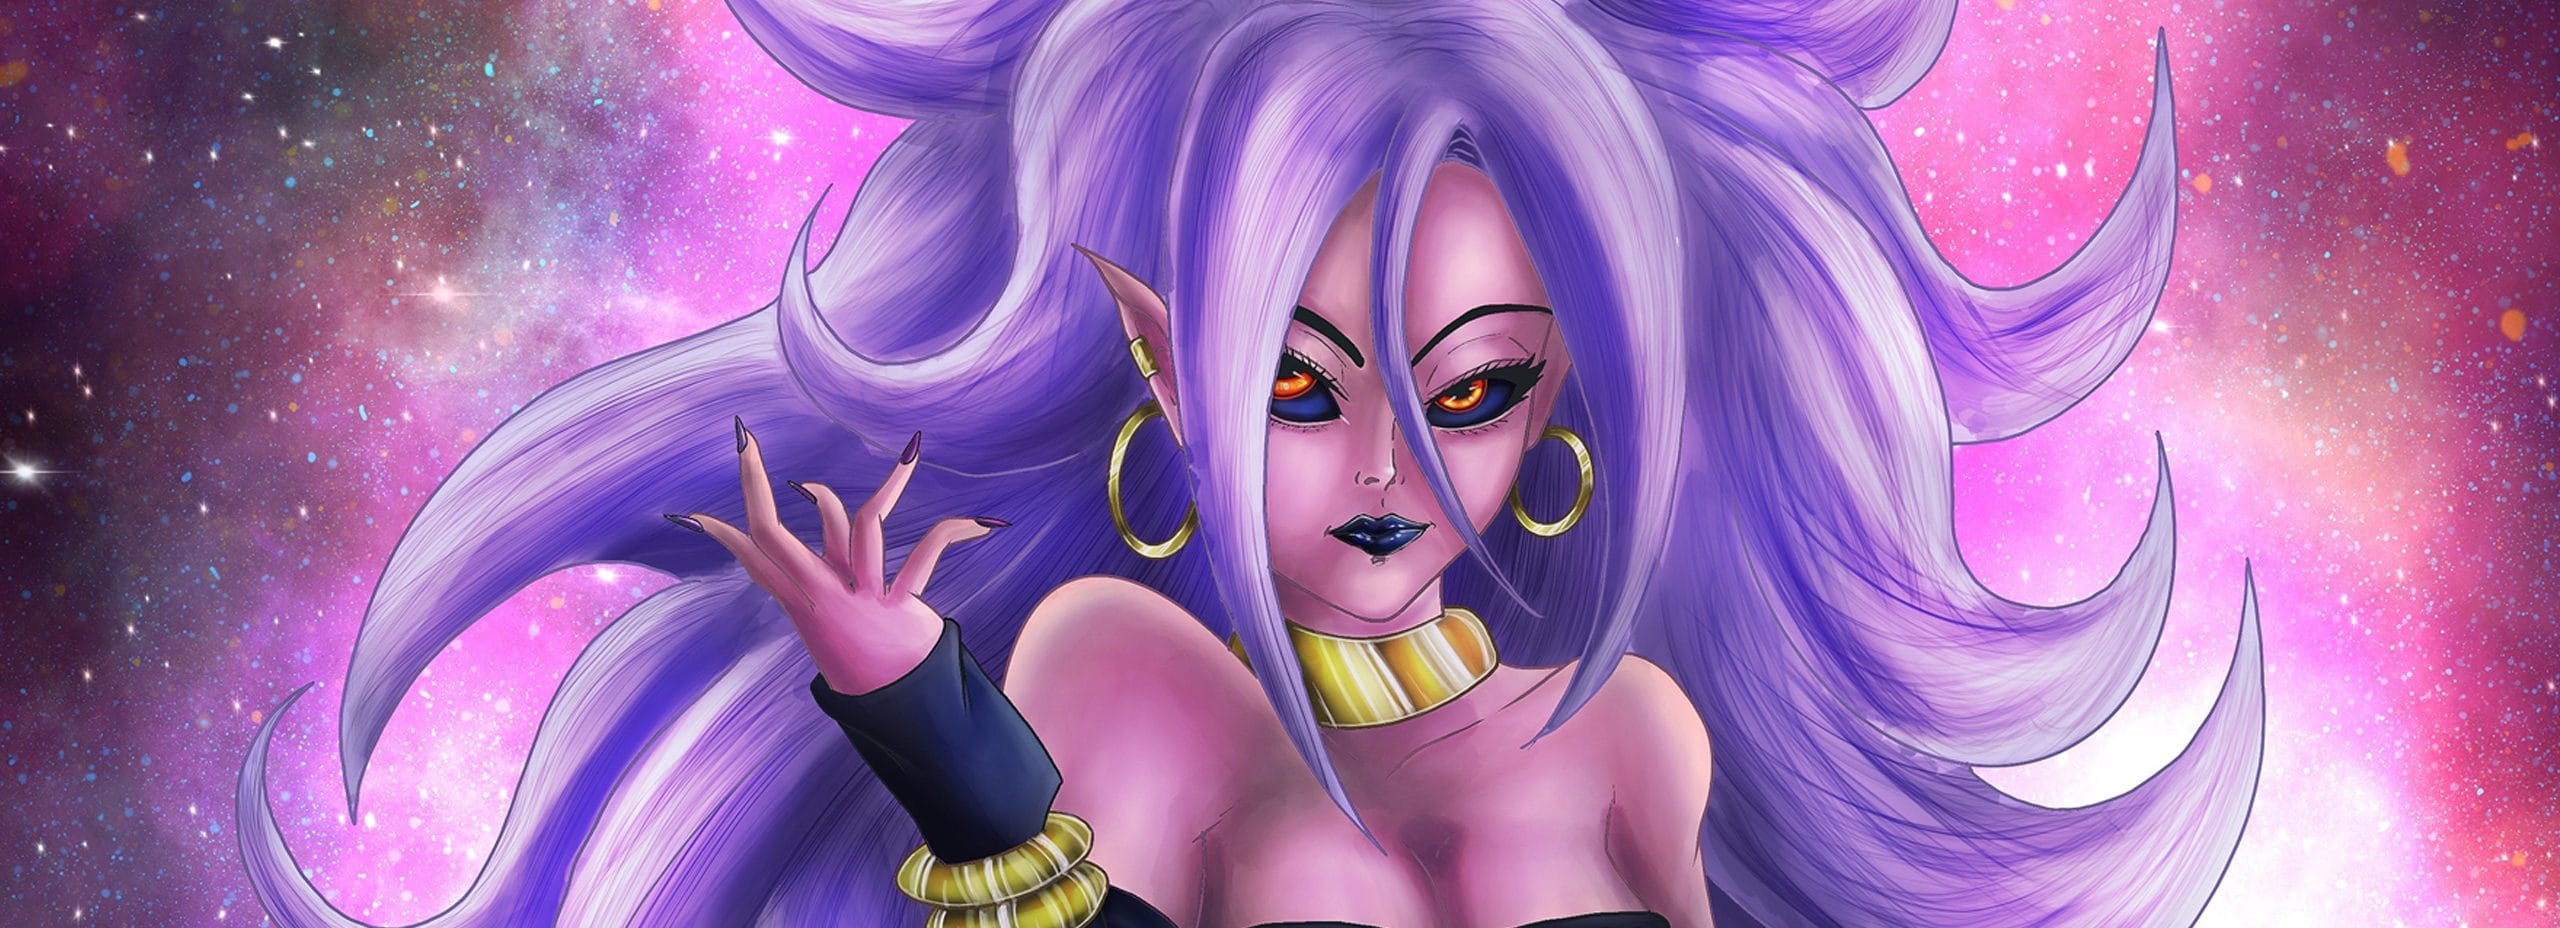 Android 21 Illustration